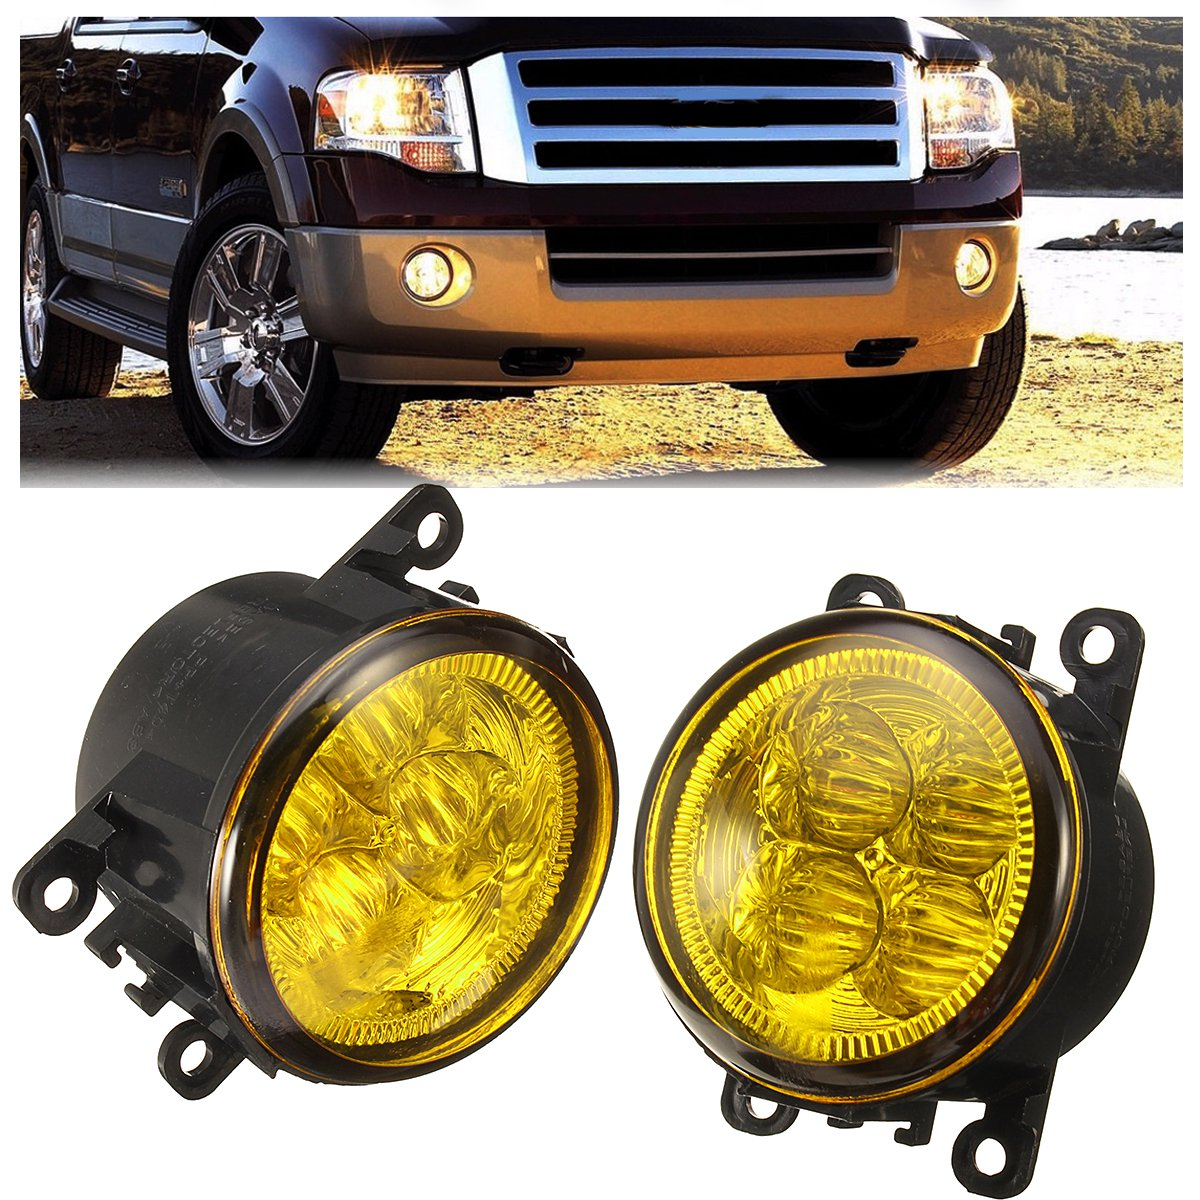 Pair Car Fog Lights Lamp with LED Bulb 12W Yellow for Ford/Honda/Acura/Nissan/Suzuki